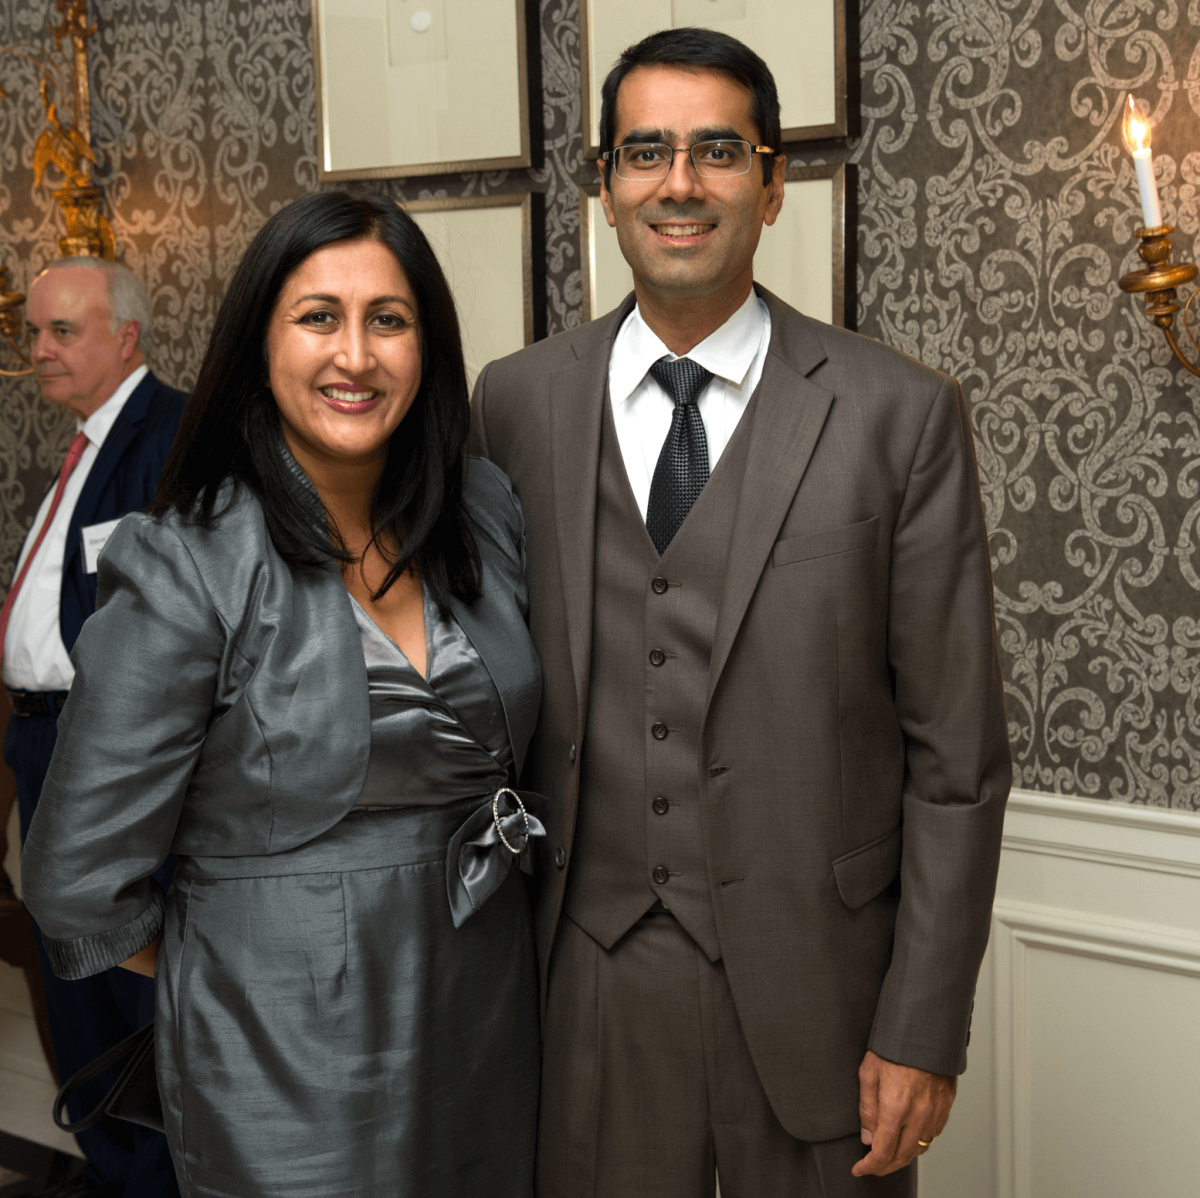 Houston, Legal Community's Harvest Celebration, Nov 2016, Sameera Mahendru, Ashish Mahendru